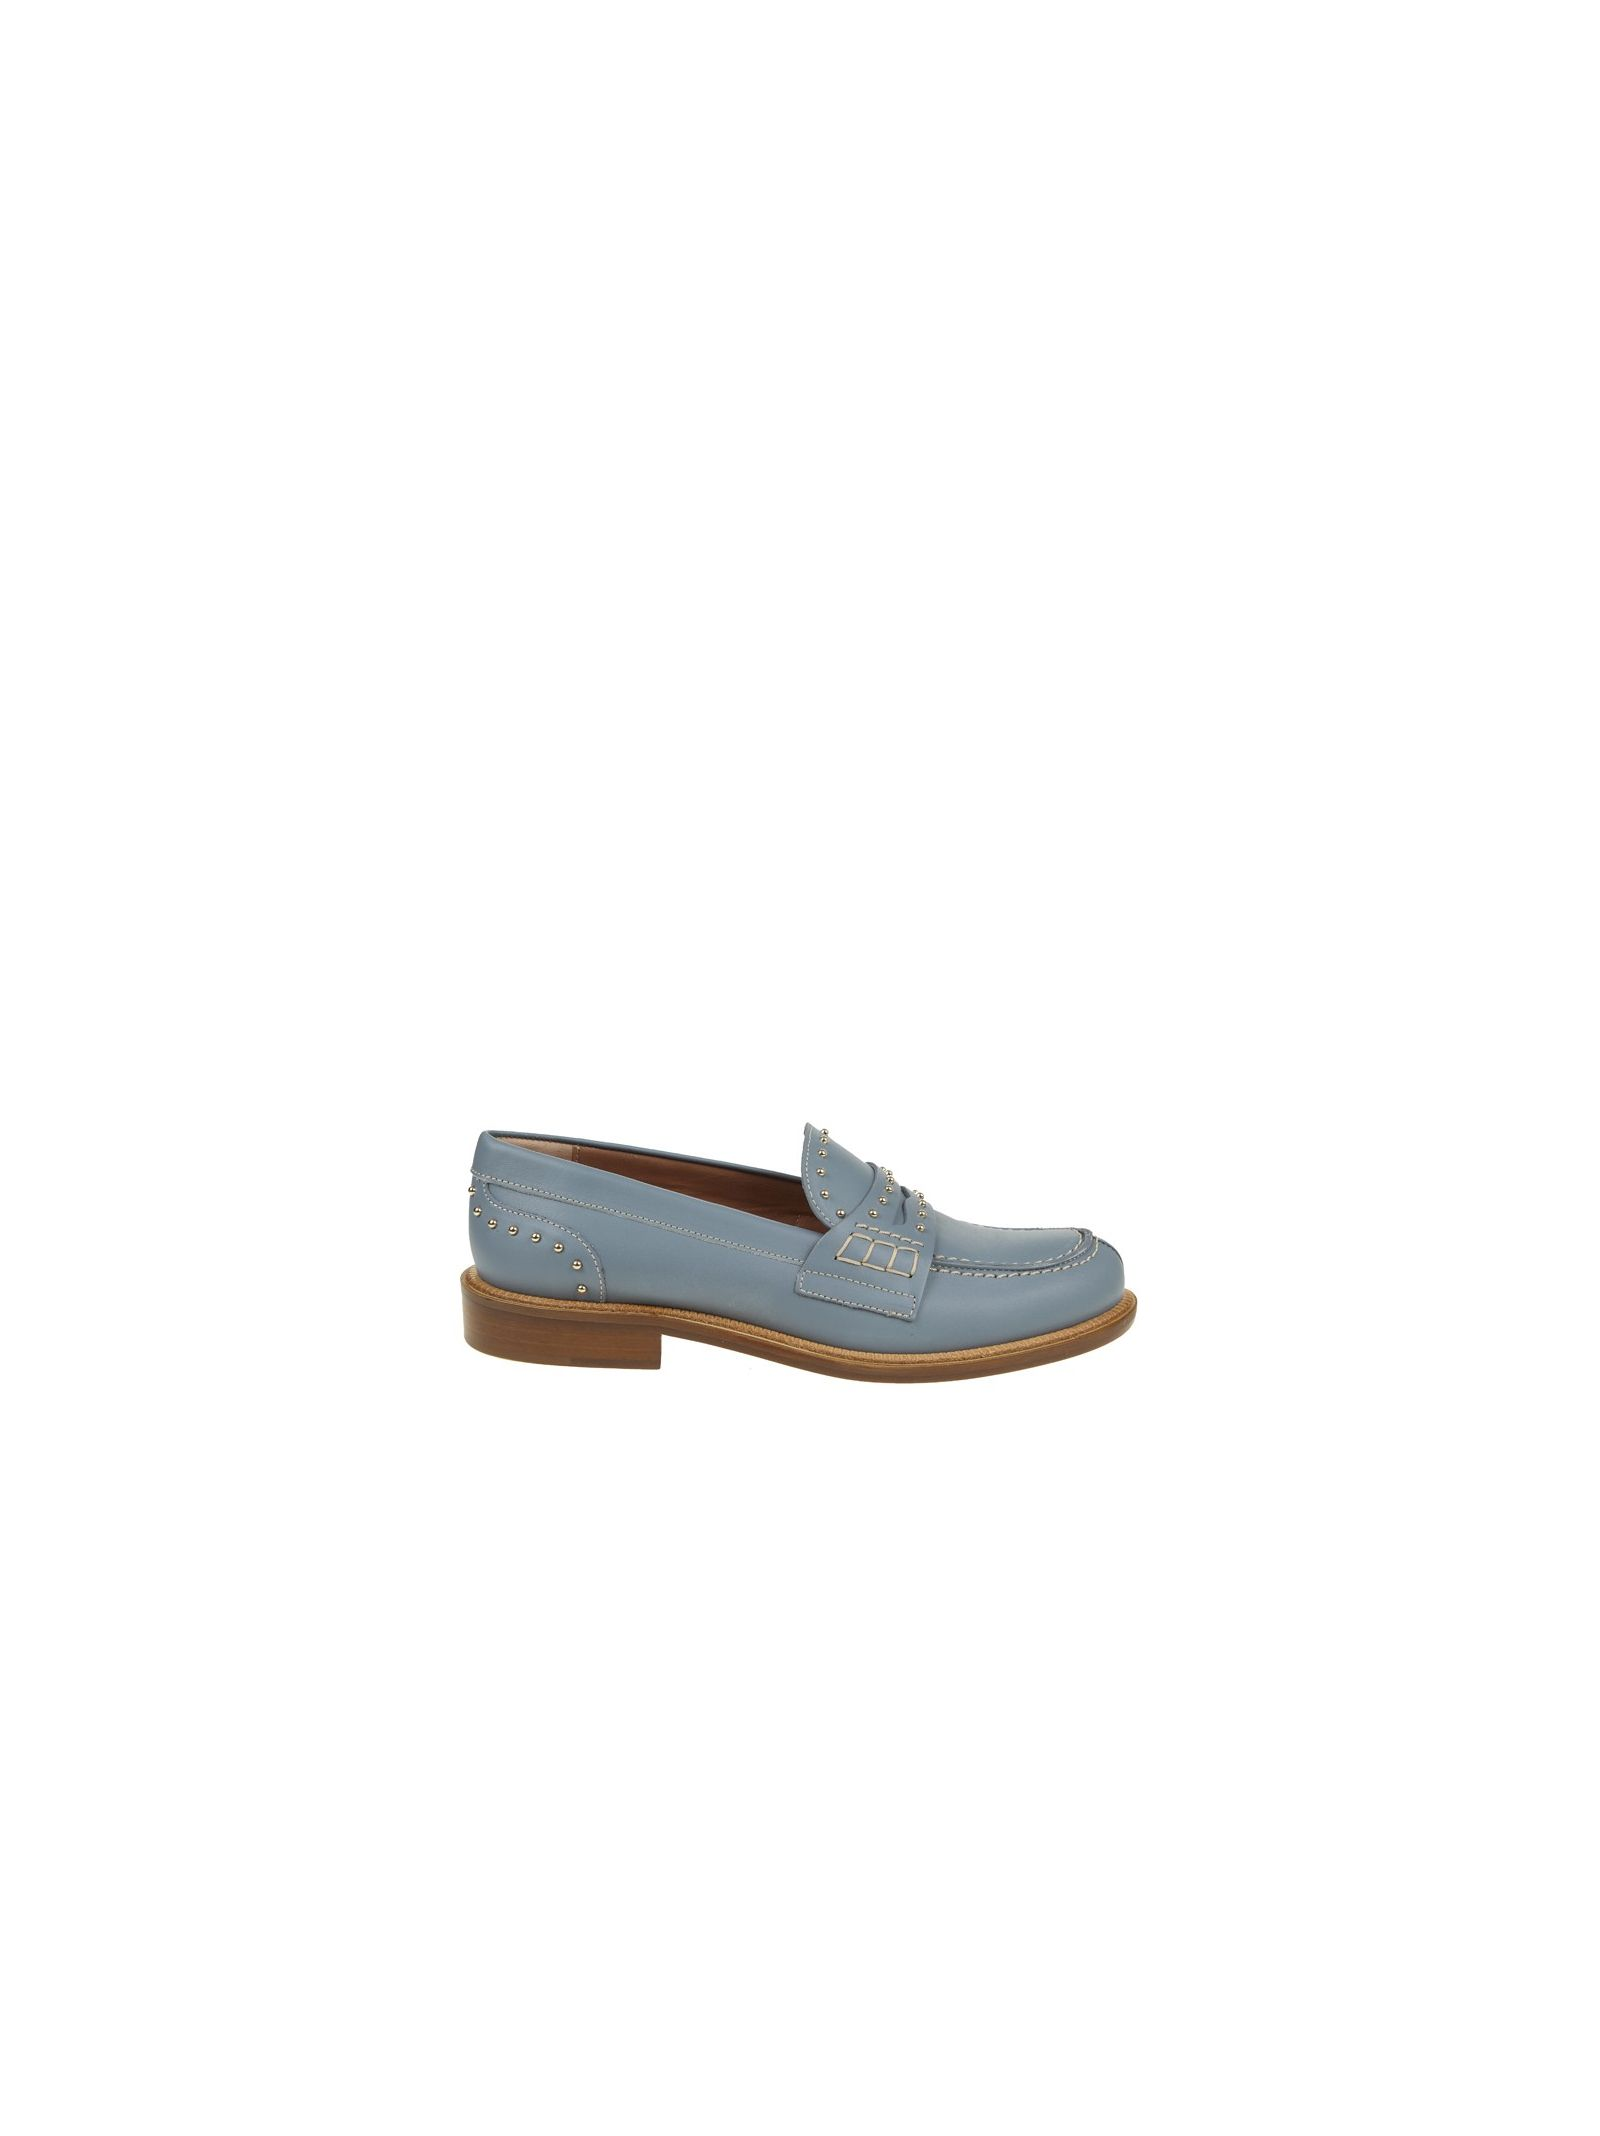 red valentino female red valentinoloafer in light blue leather